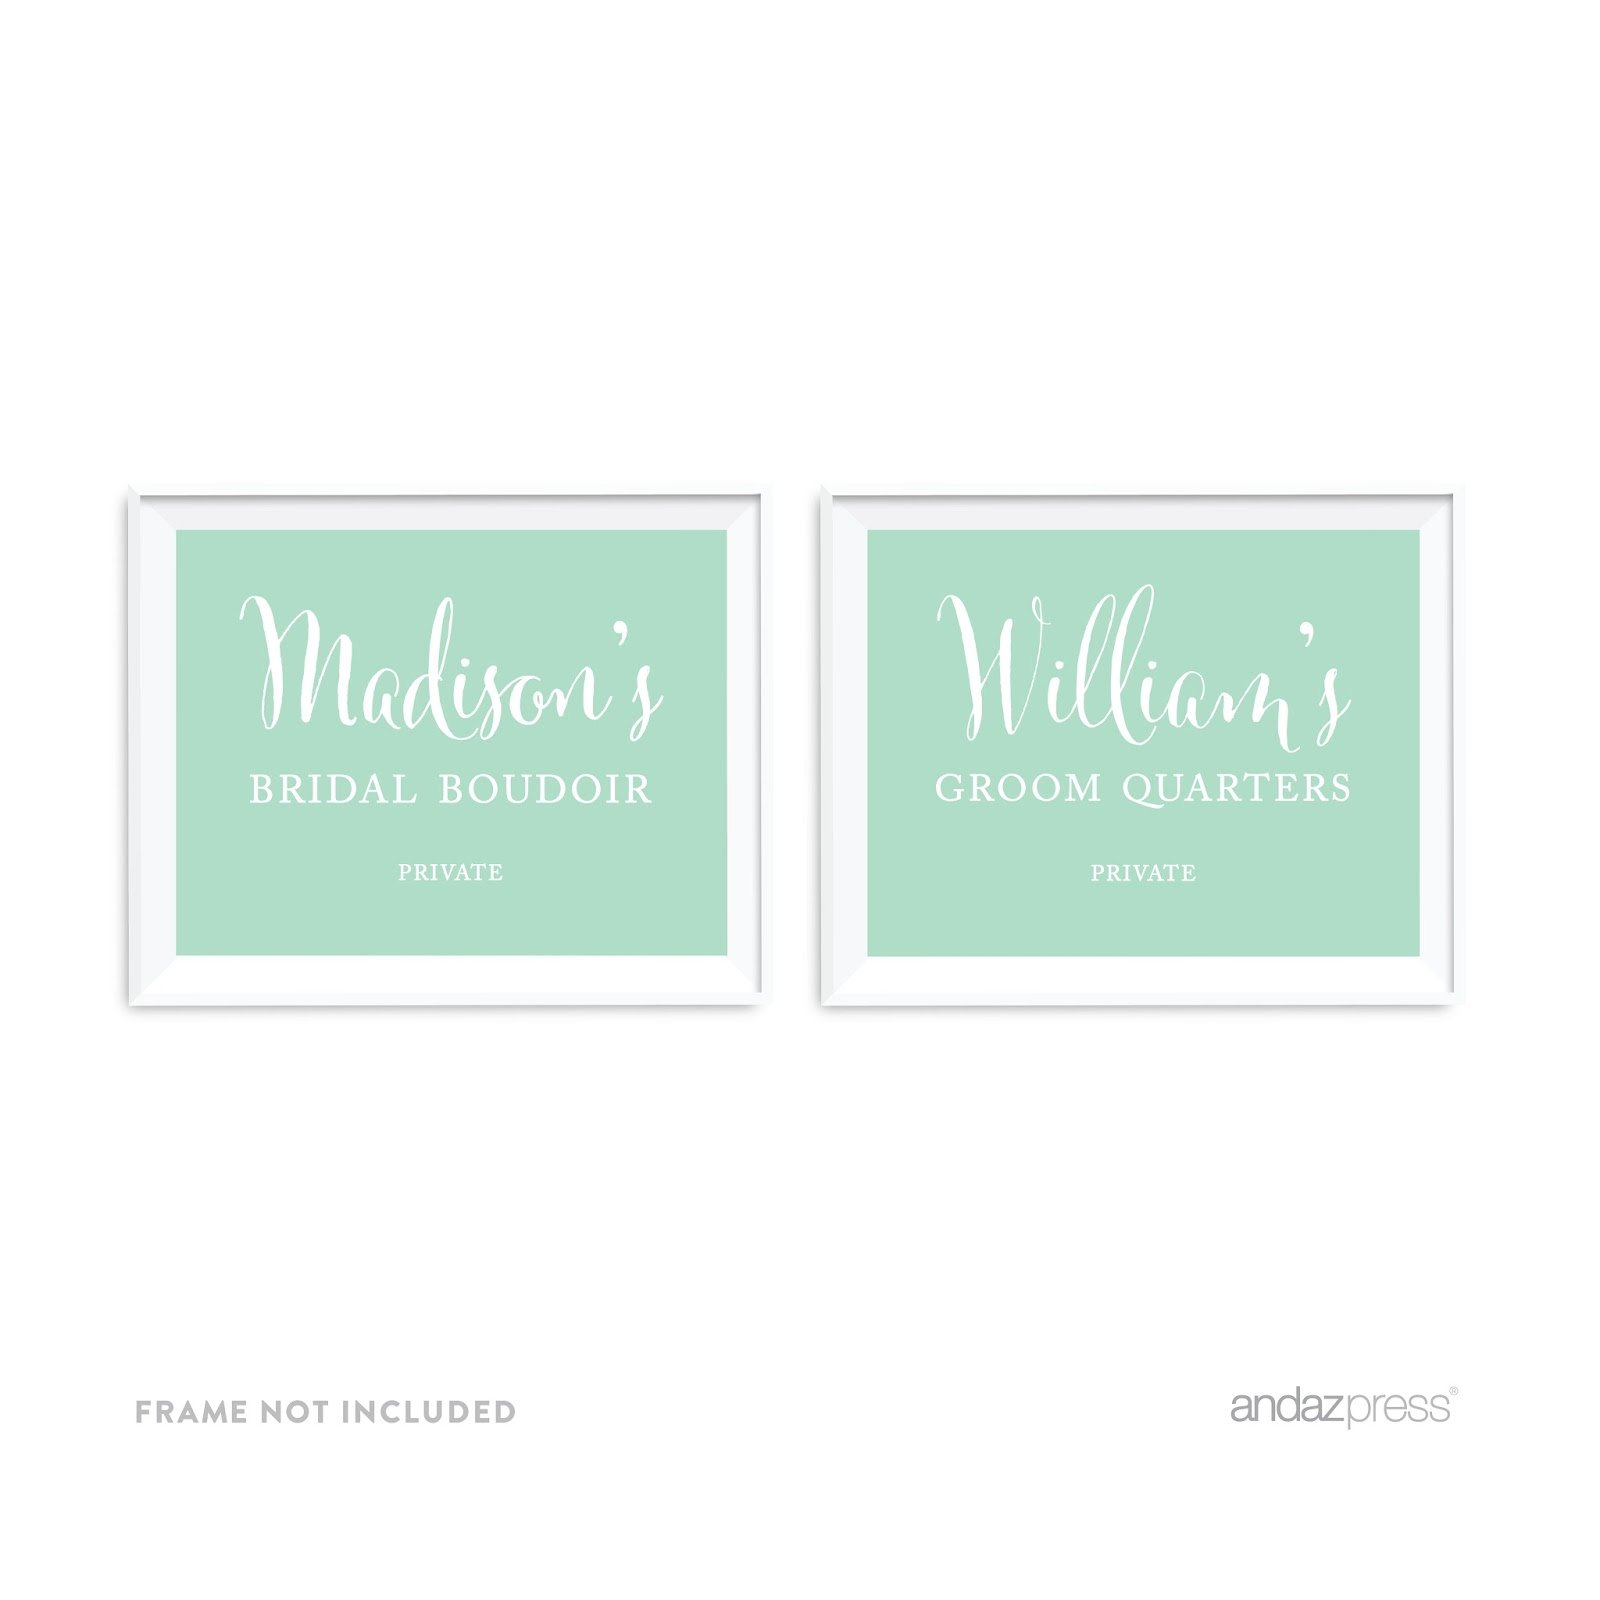 Andaz Press Personalized Wedding Party Signs, Mint Green, 8.5x11-inch Wall Art, Poster, Gift, Madison's Bridal Boudoir Private, Benjamin's Groom Quarters Dressing Room Sign, 2-Pack, Custom